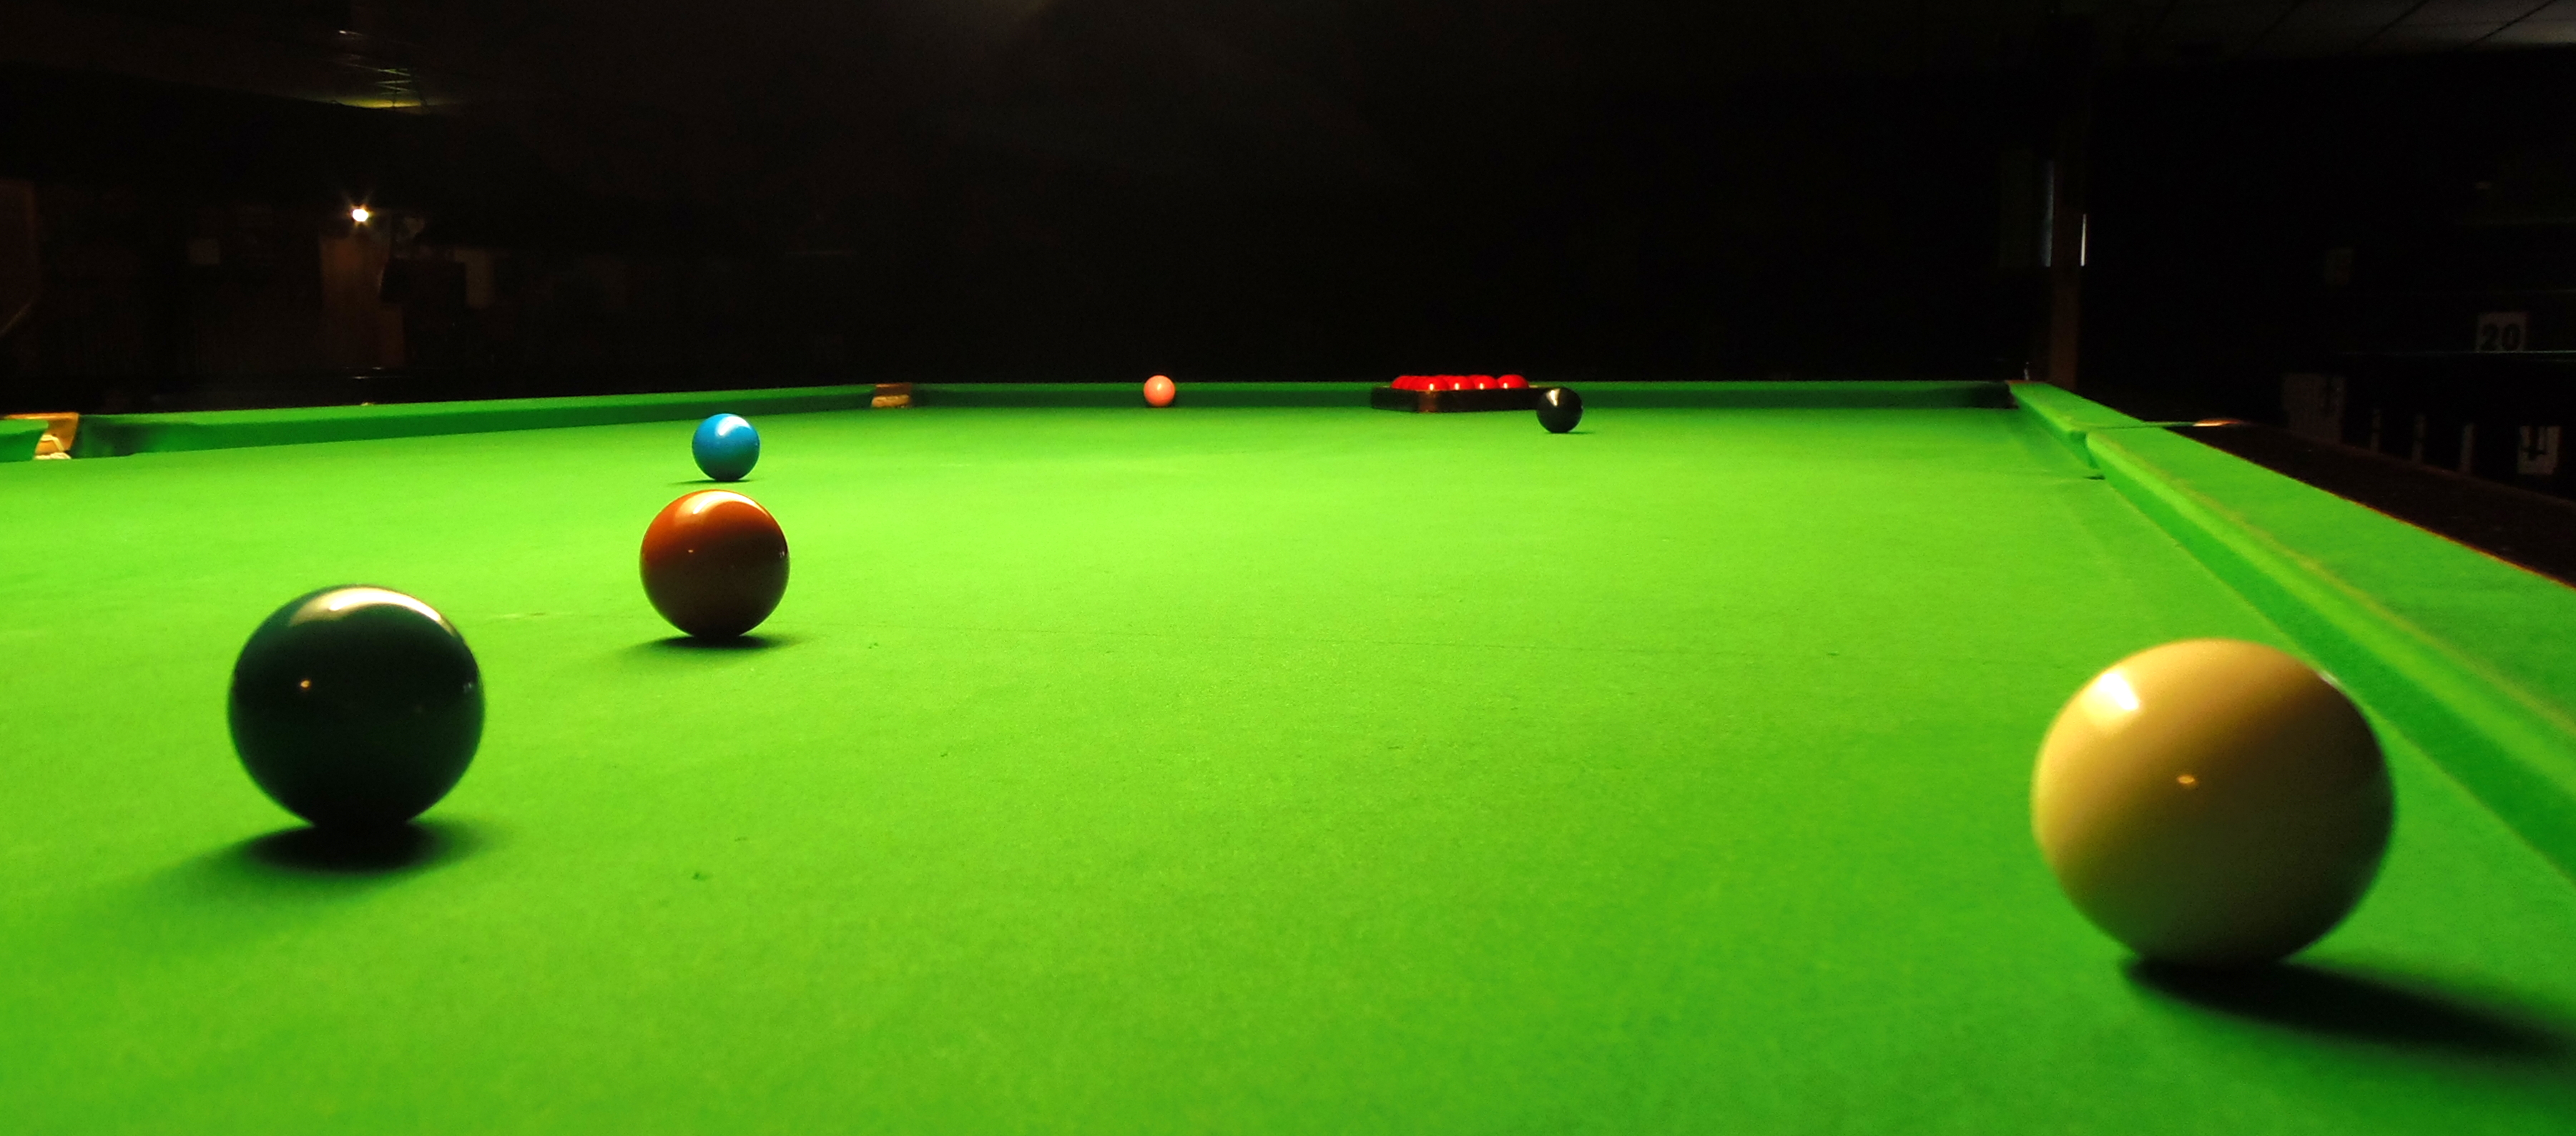 world snooker matches